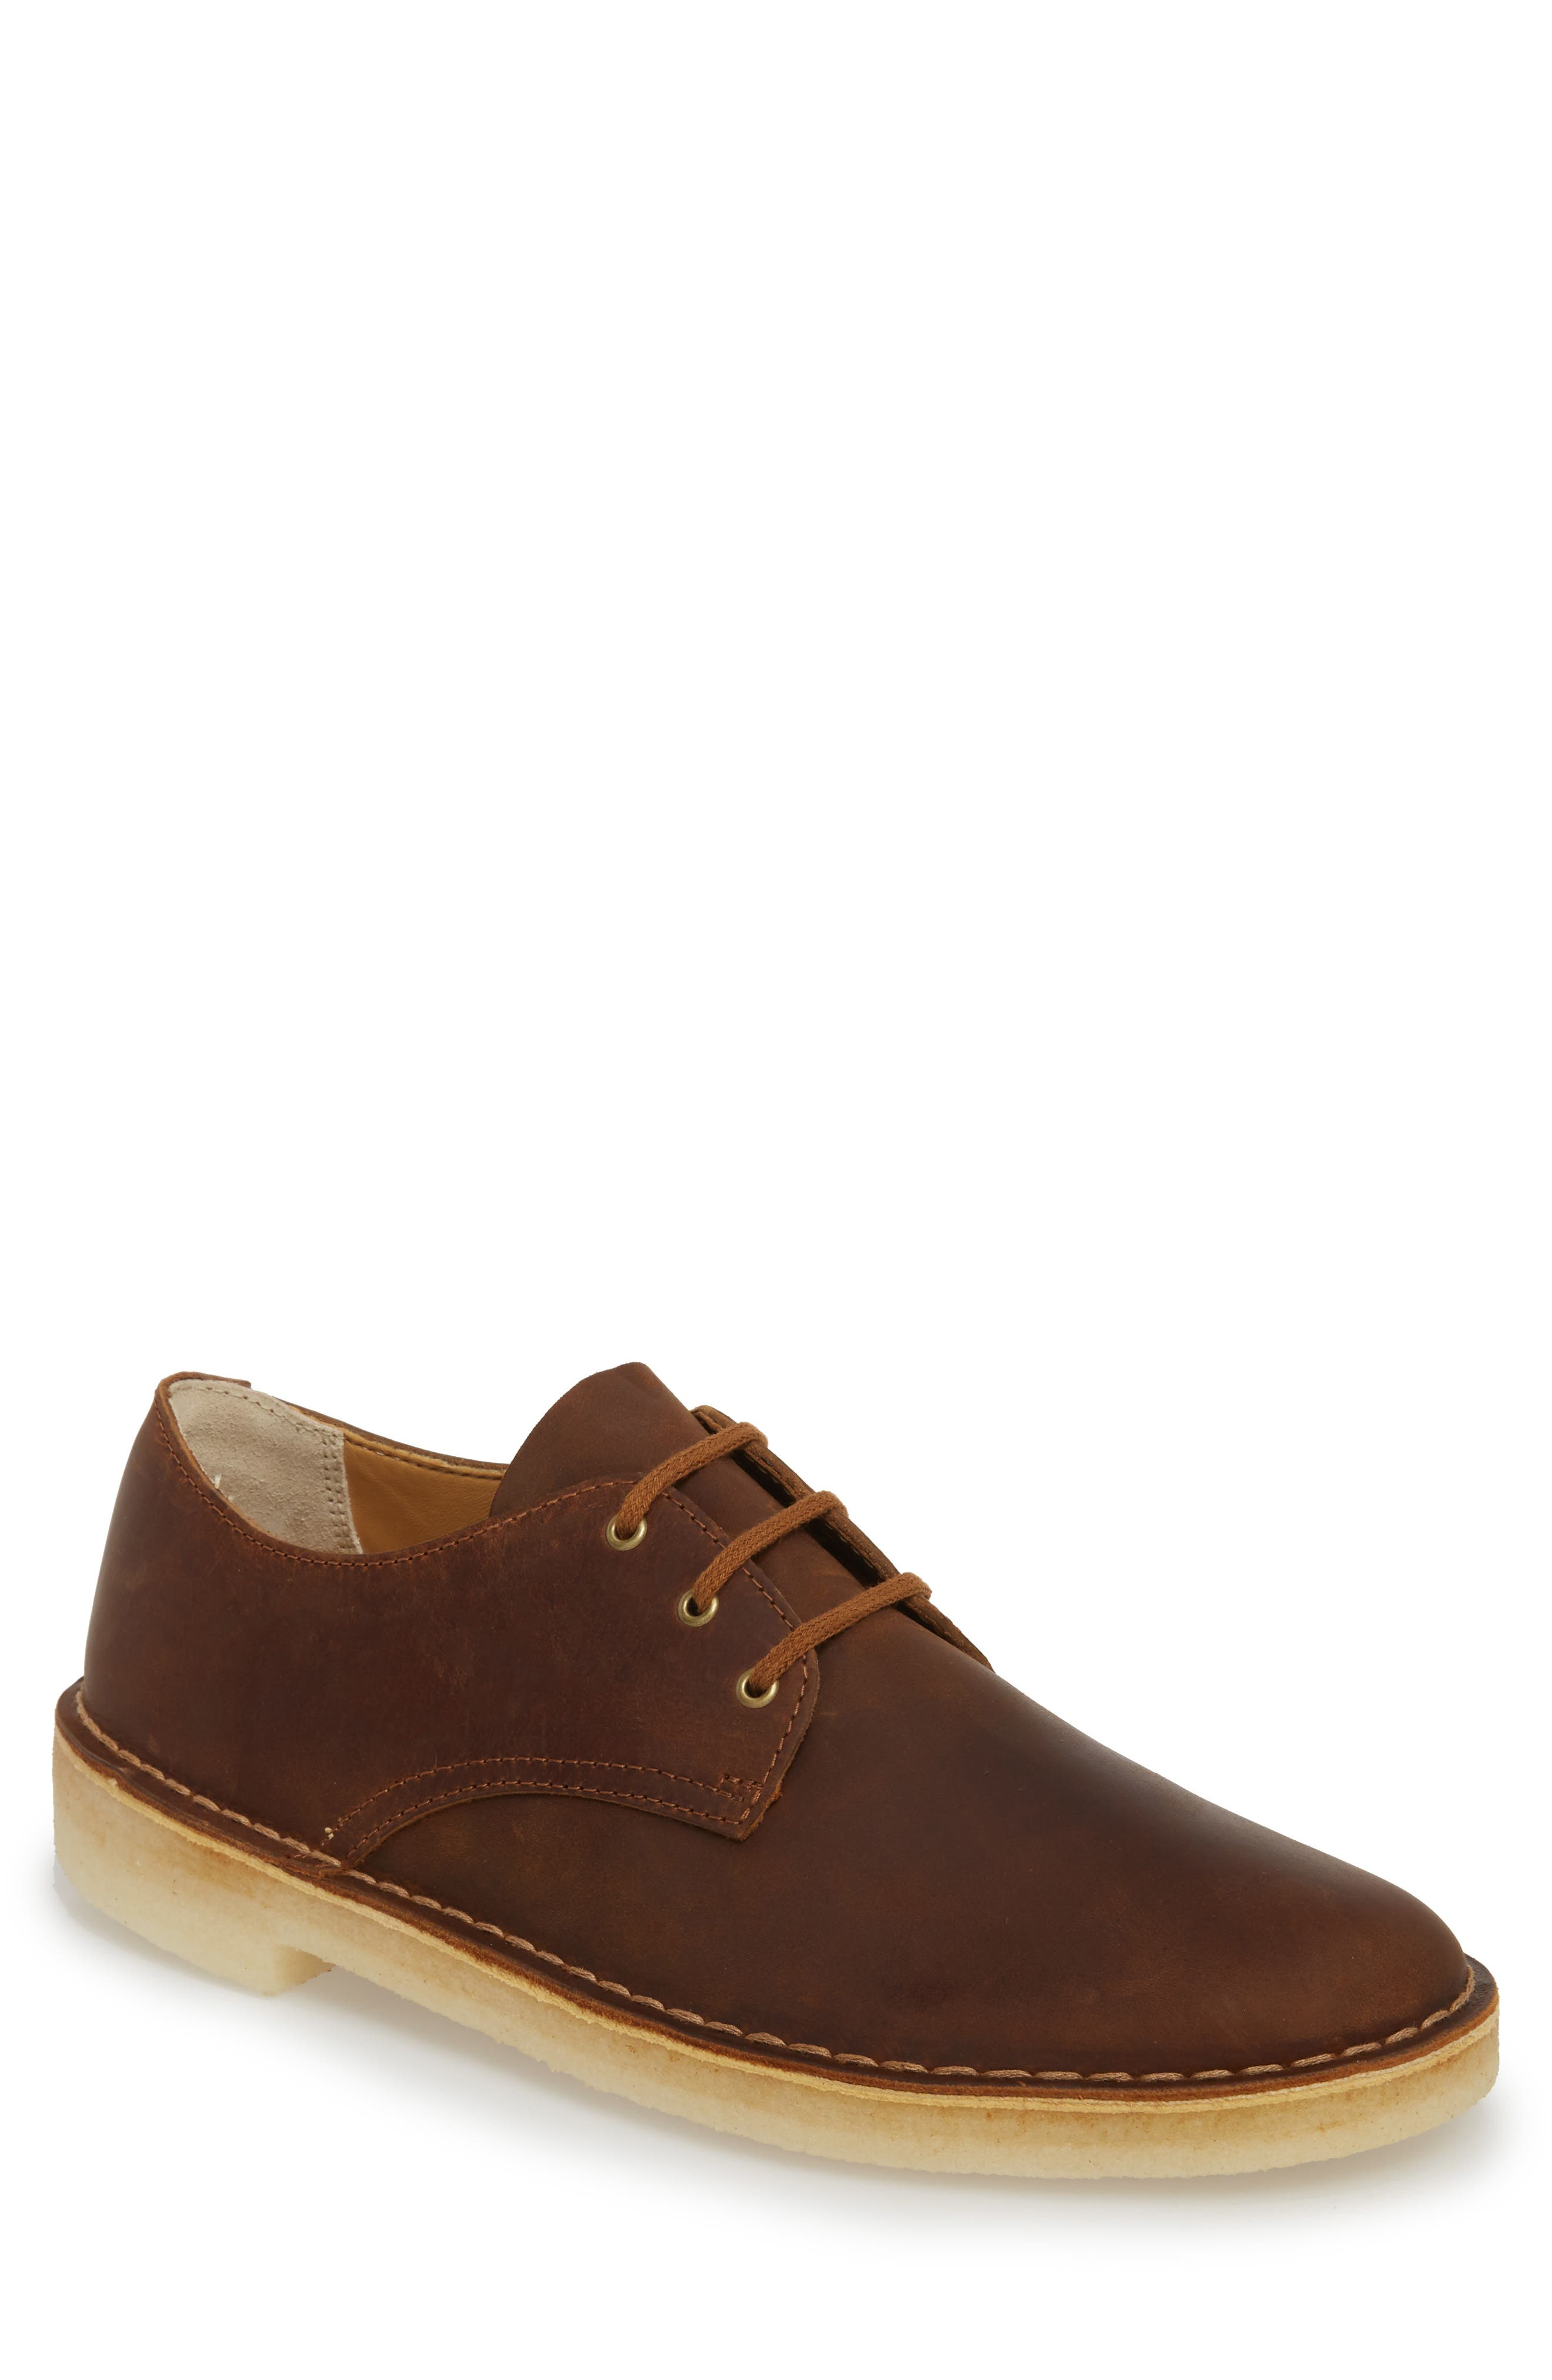 Clarks<sup>®</sup> Desert Crosby Plain Toe Derby,                             Main thumbnail 1, color,                             Beeswax Leather